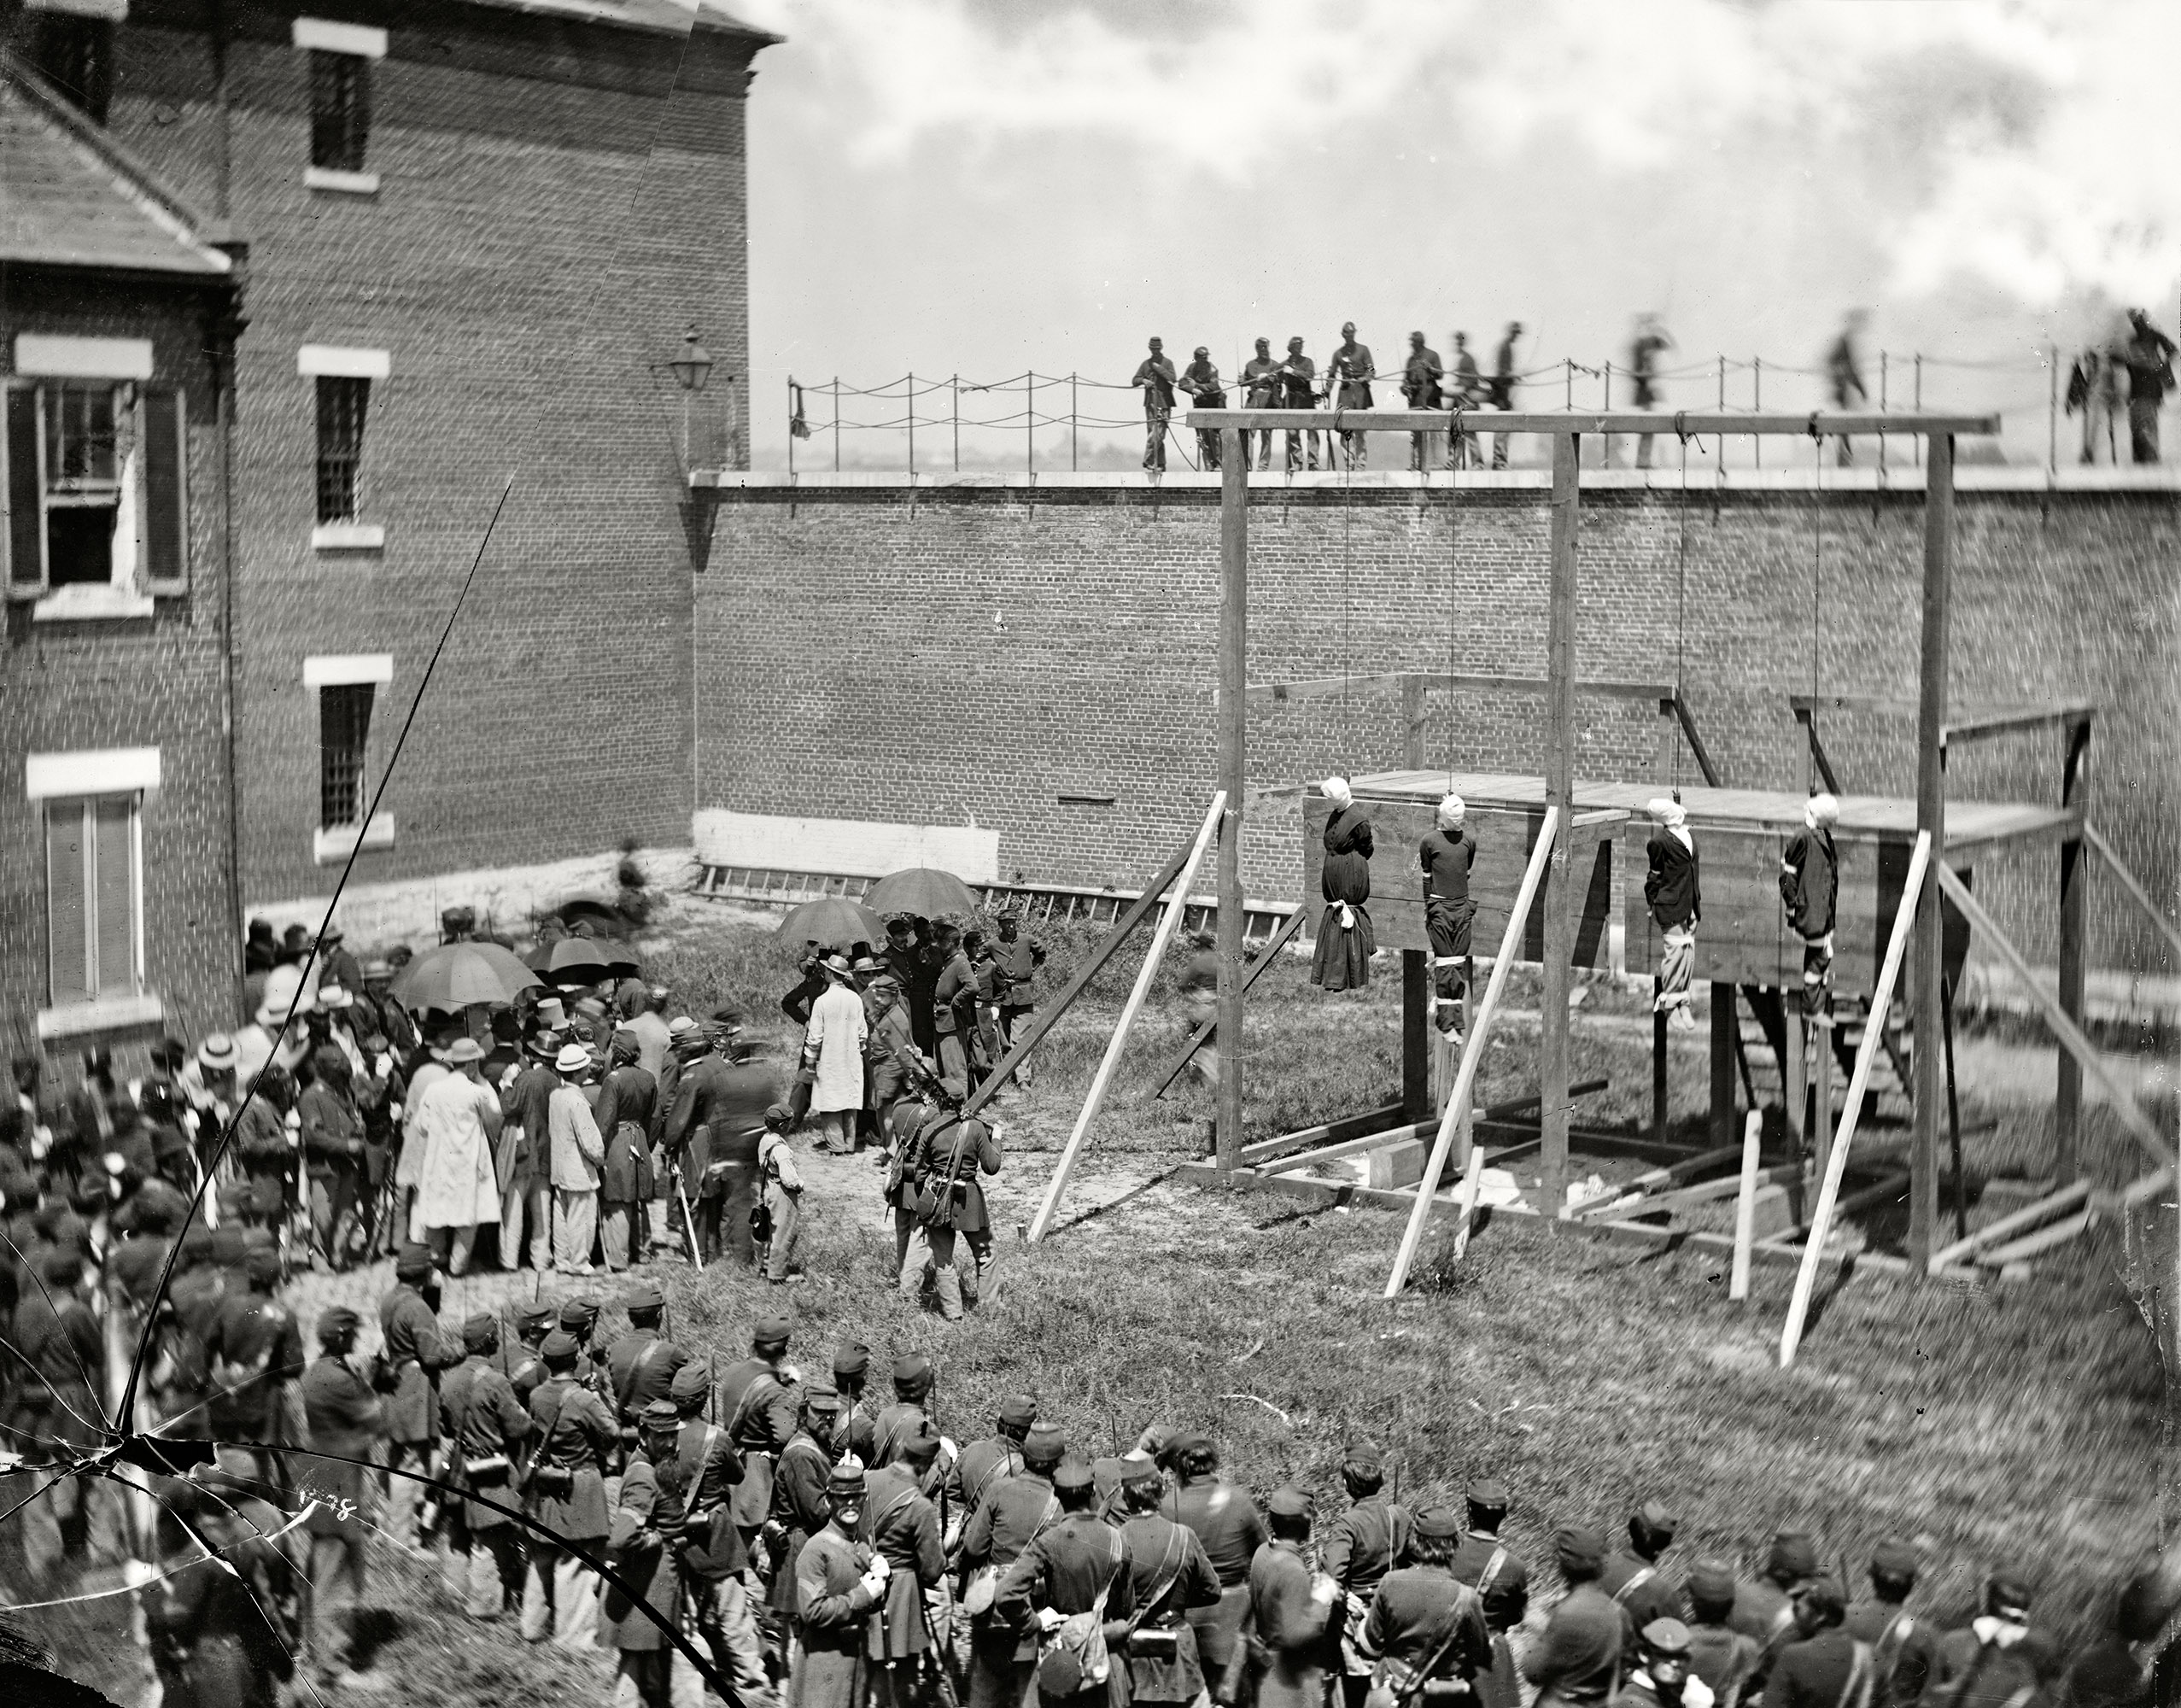 July 7, 1865.  Washington, D.C. Hanging hooded bodies of the four conspirators; crowd departing.  Lincoln assassination conspirators Mary Surratt, Lewis Payne, David Herold and George Atzerodt shortly after their execution at Fort McNair.